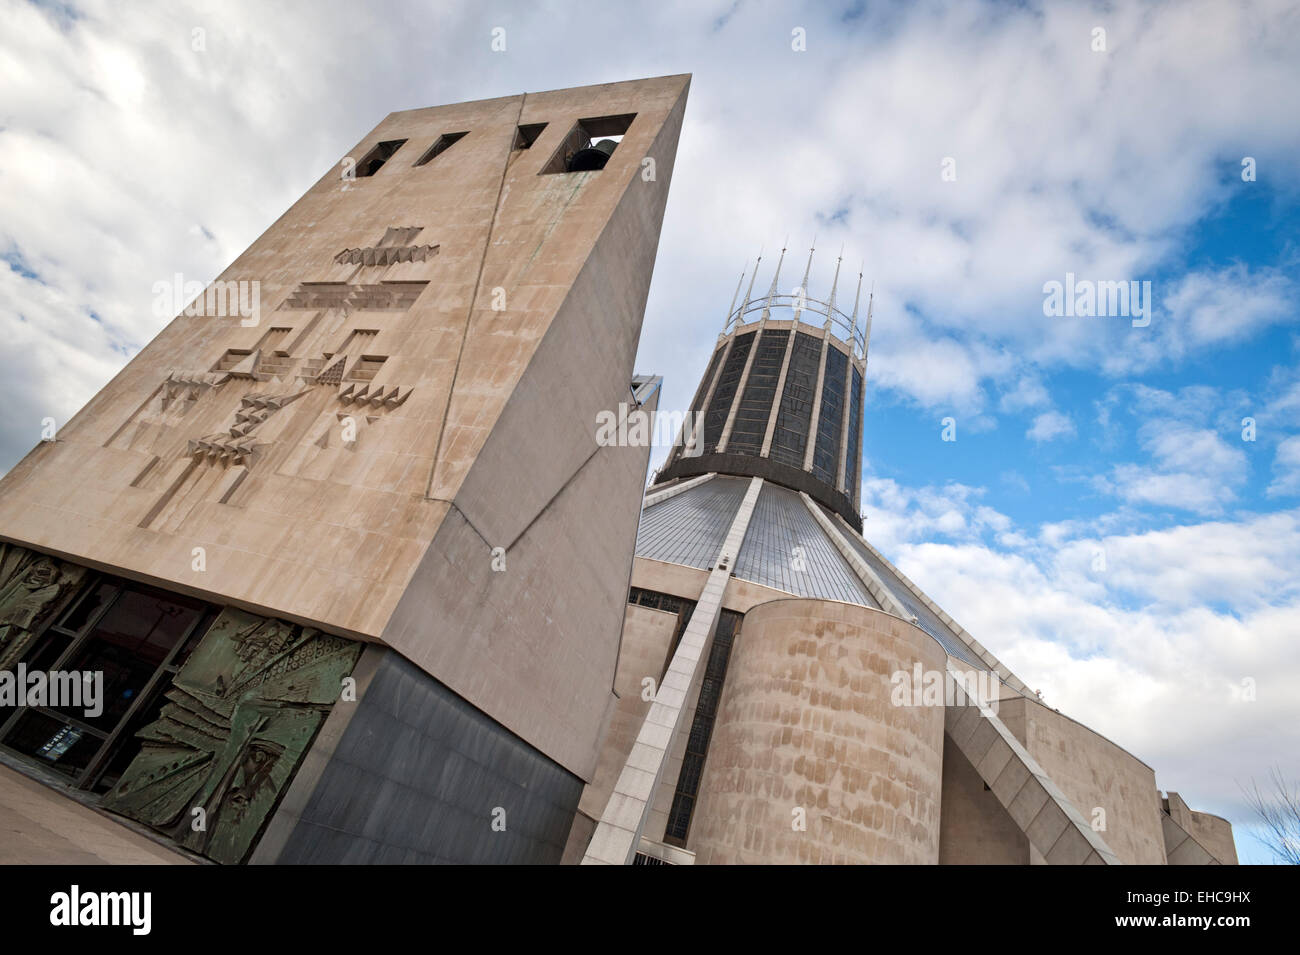 The Liverpool Metropolitan Cathedral, Liverpool, Merseyside, England, UK - Stock Image